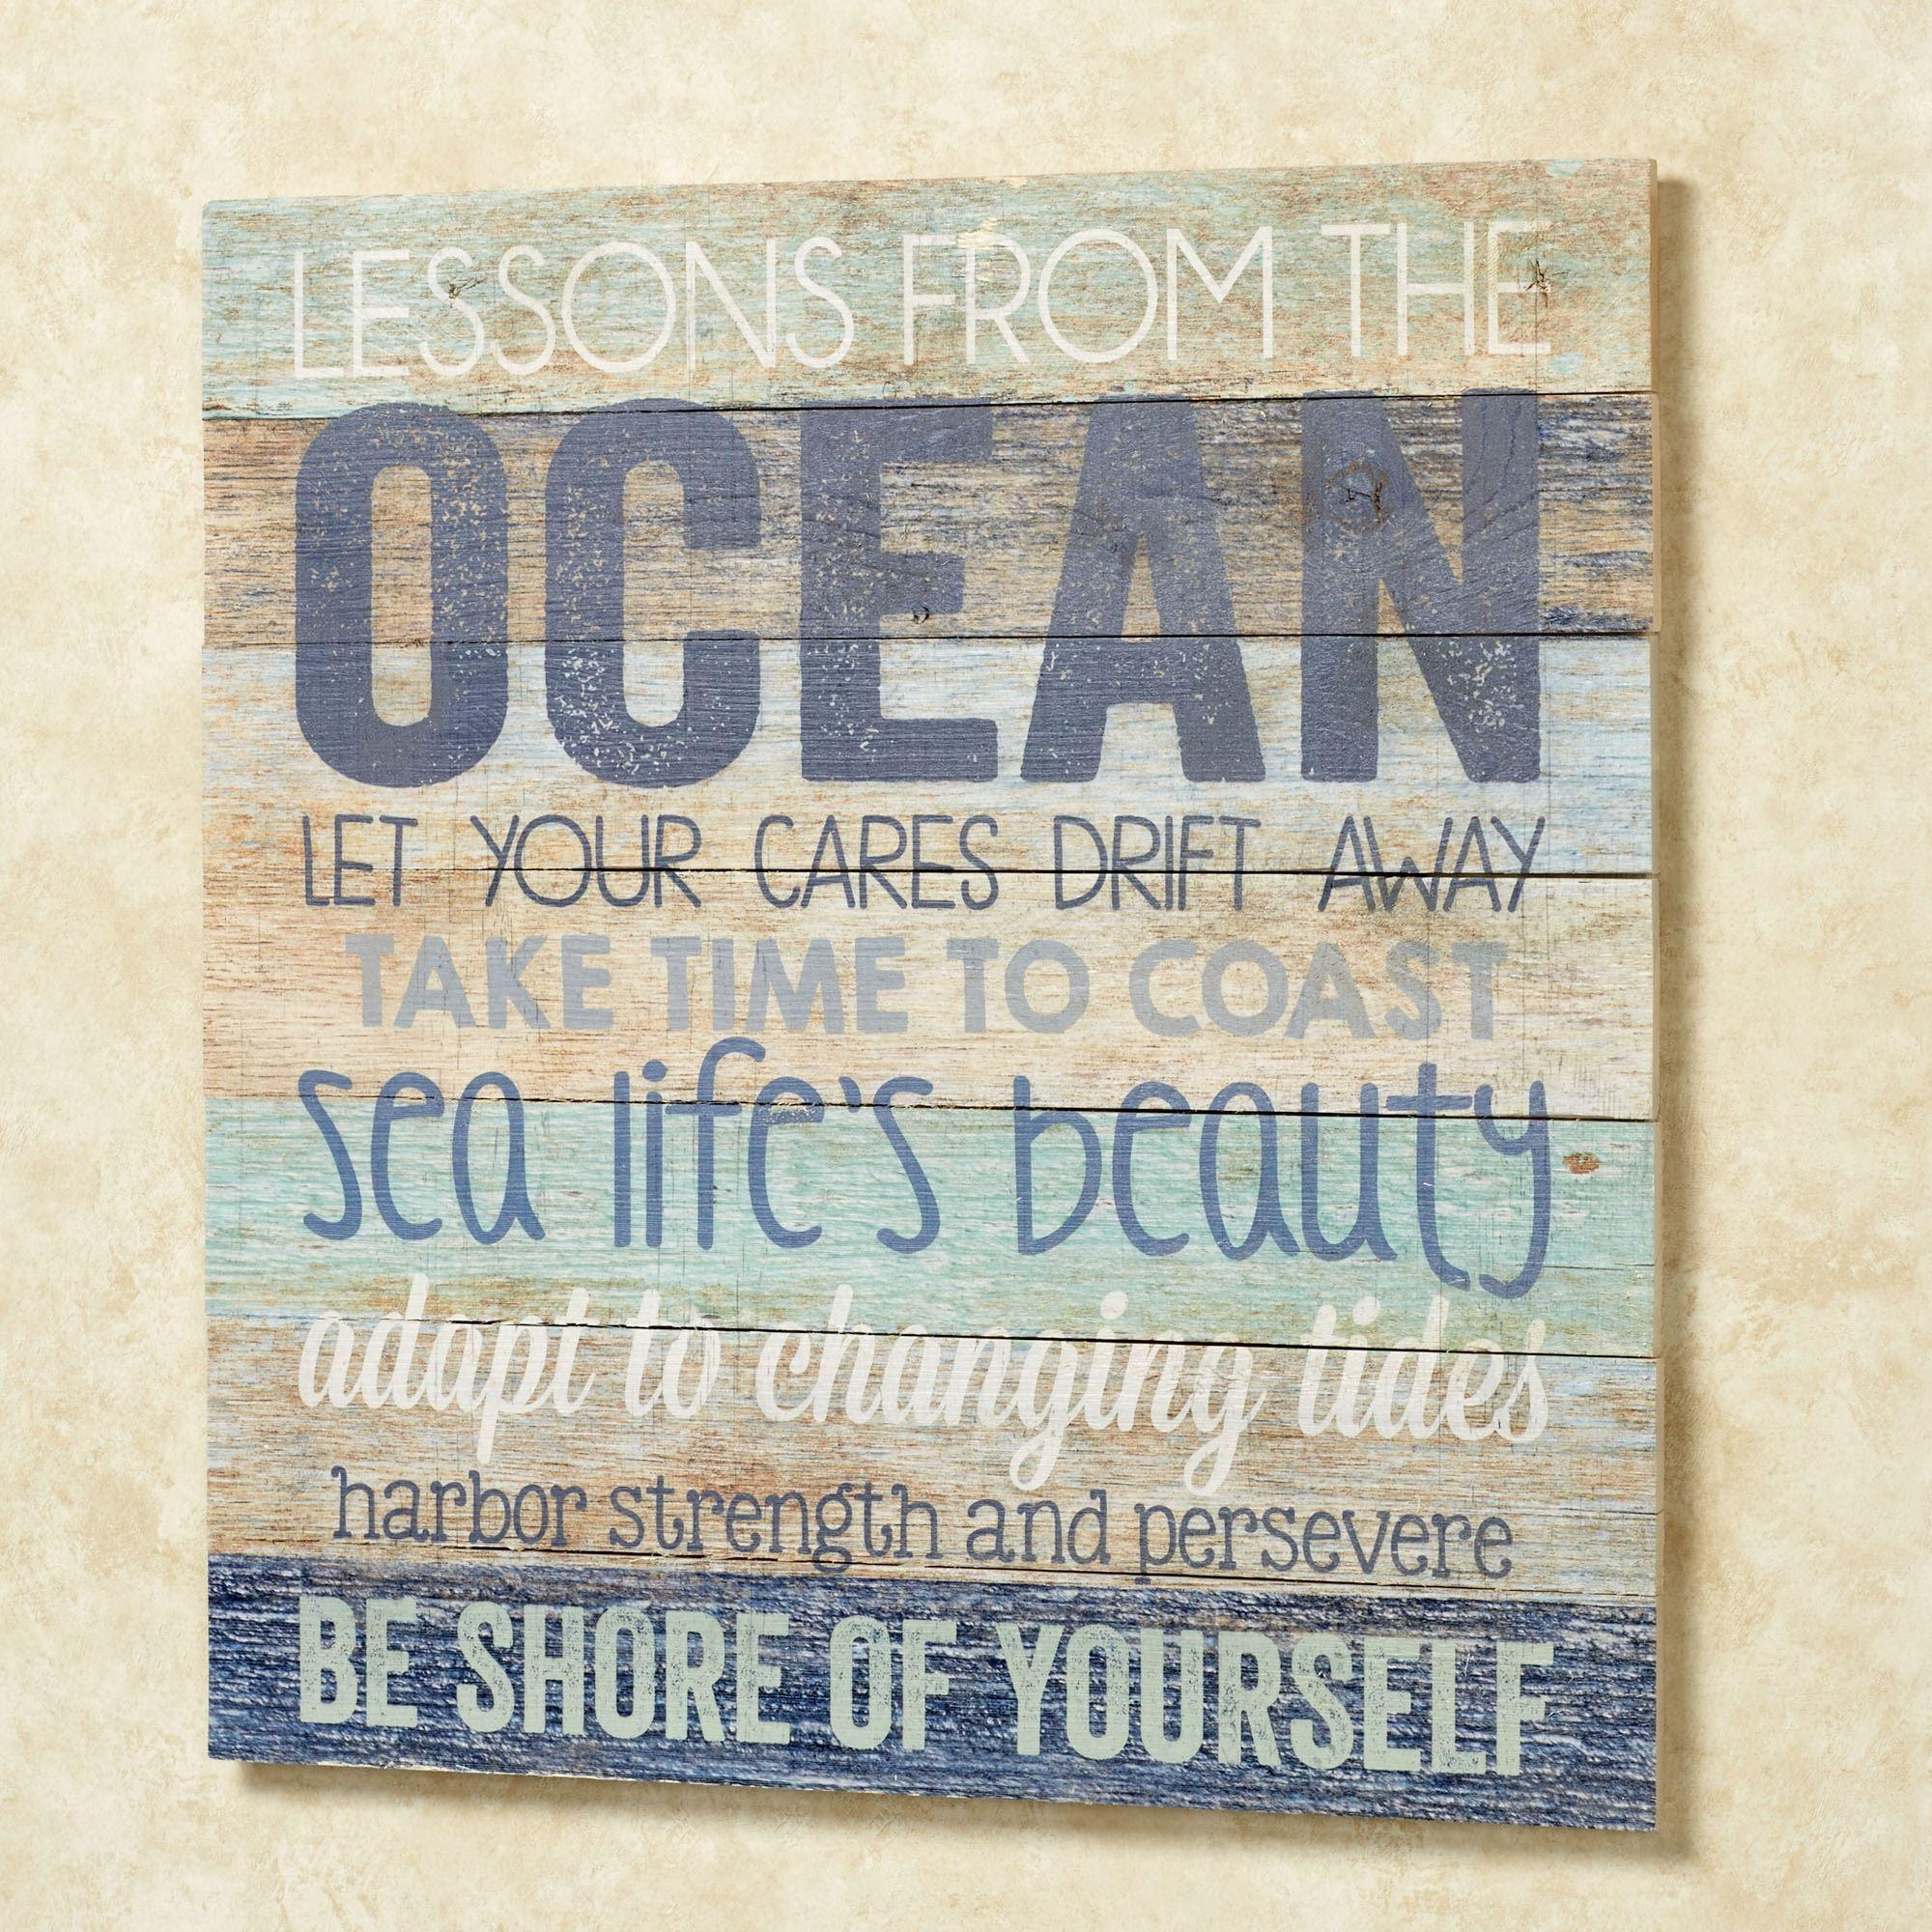 Oceans Wisdom Wood Wall Art Plaque Pertaining To Coastal Wall Art (Image 16 of 20)